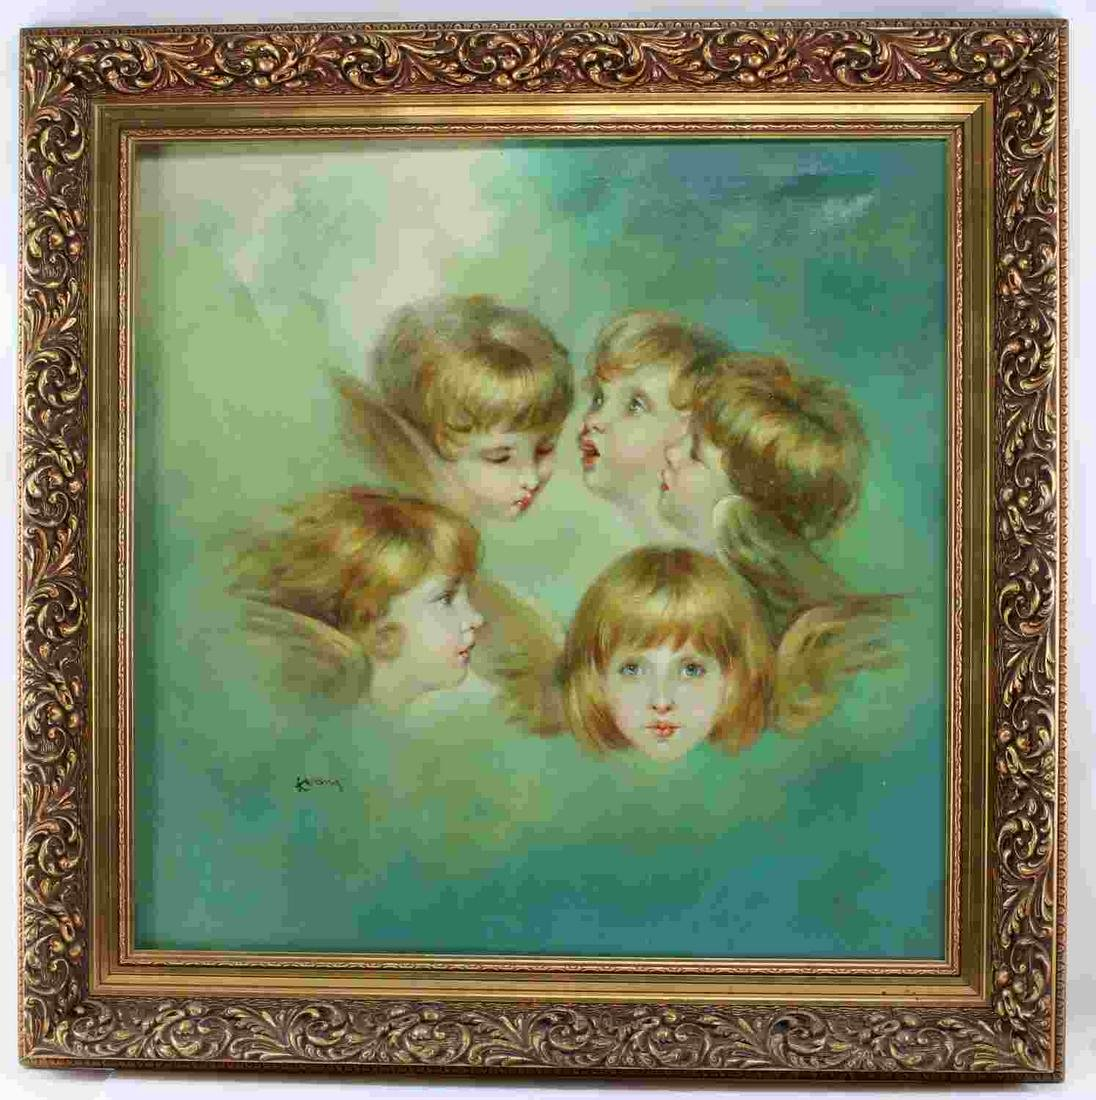 FRAMED OIL ON CANVAS OF CHERUBS IN SKY